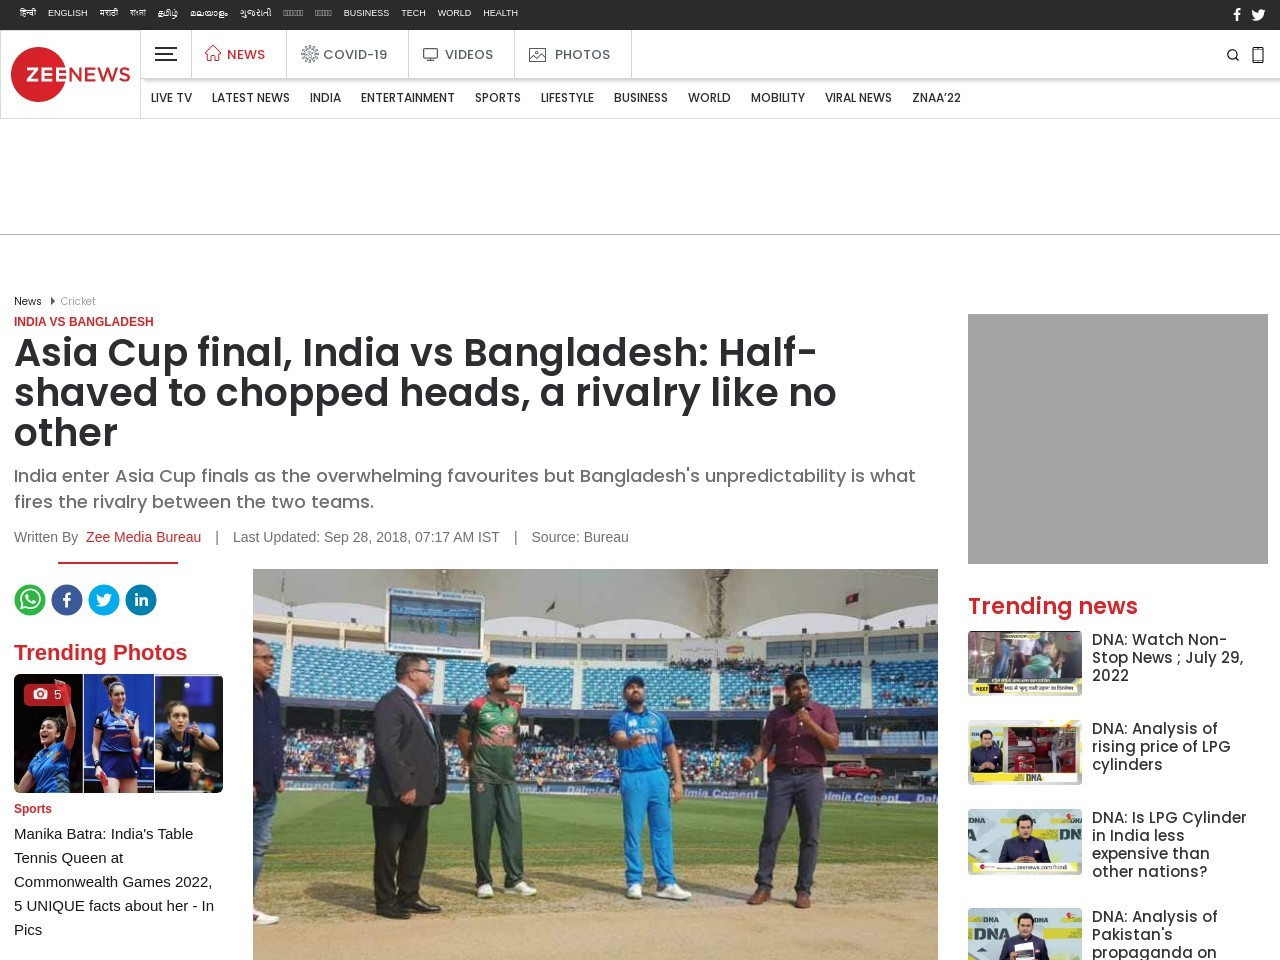 Asia Cup final, India vs Bangladesh: Half-shaved to chopped heads, a rivalry like no other